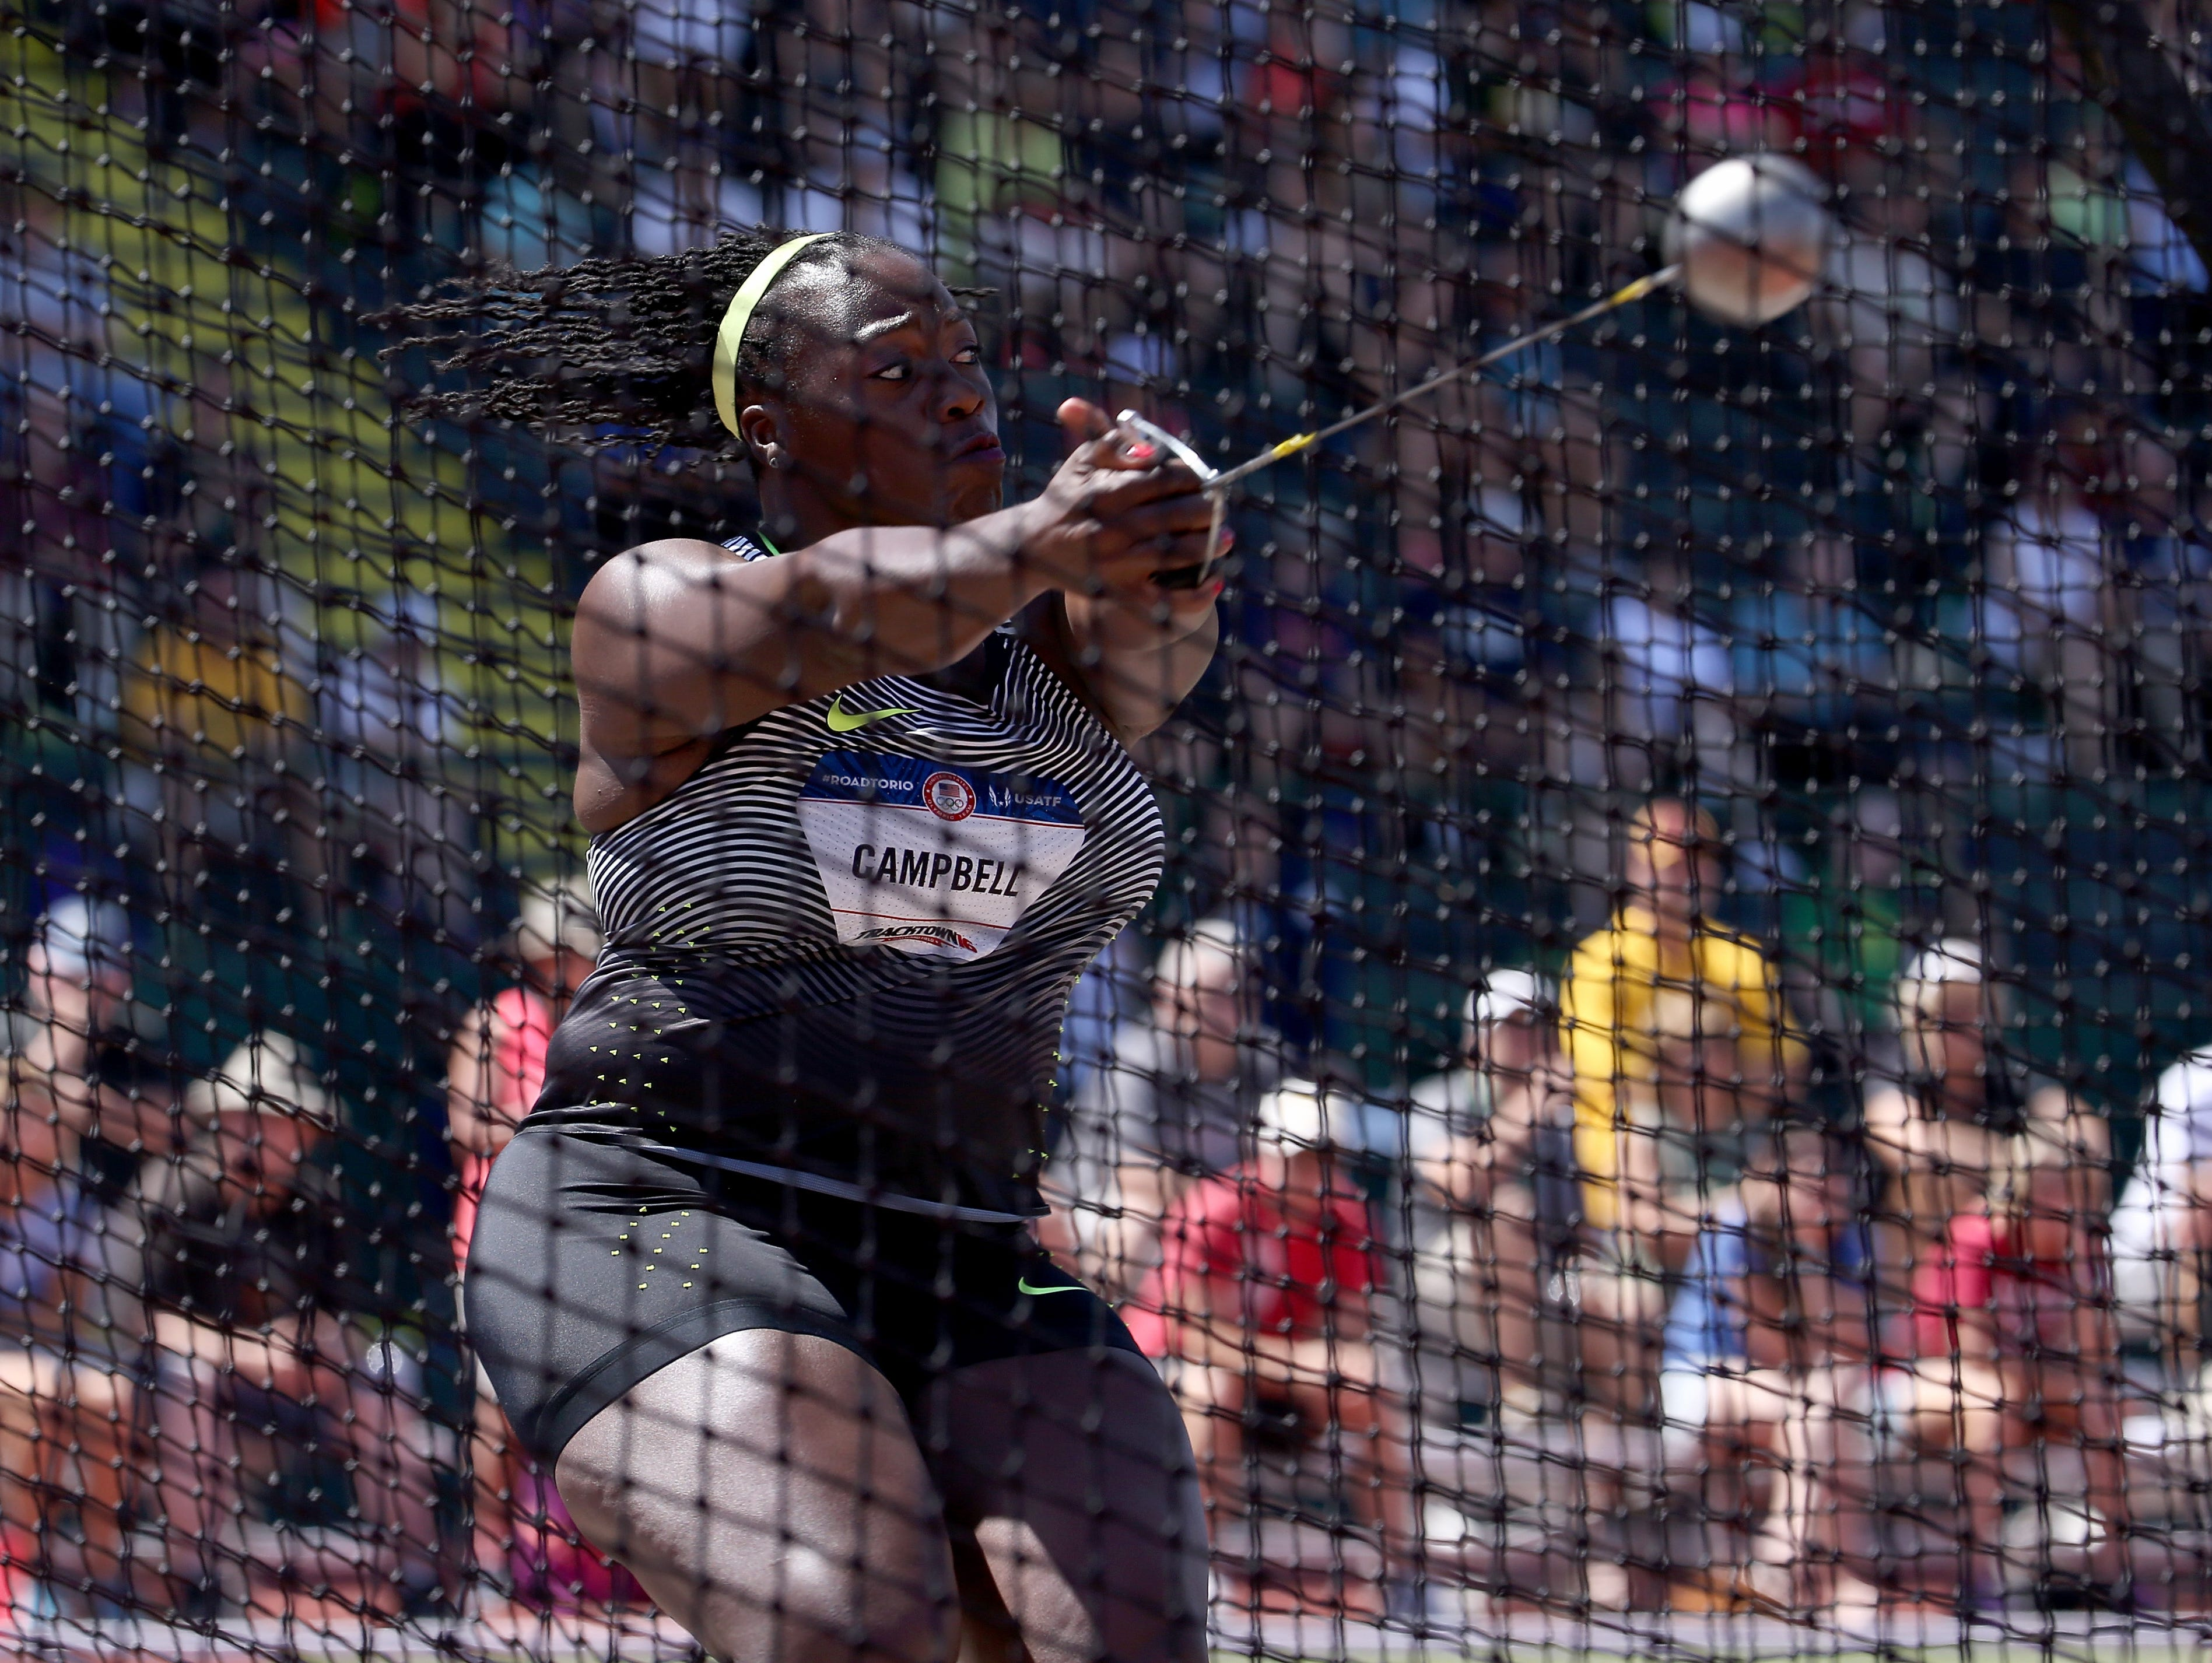 Pike hammer thrower Amber Campbell advances to final | USA ...